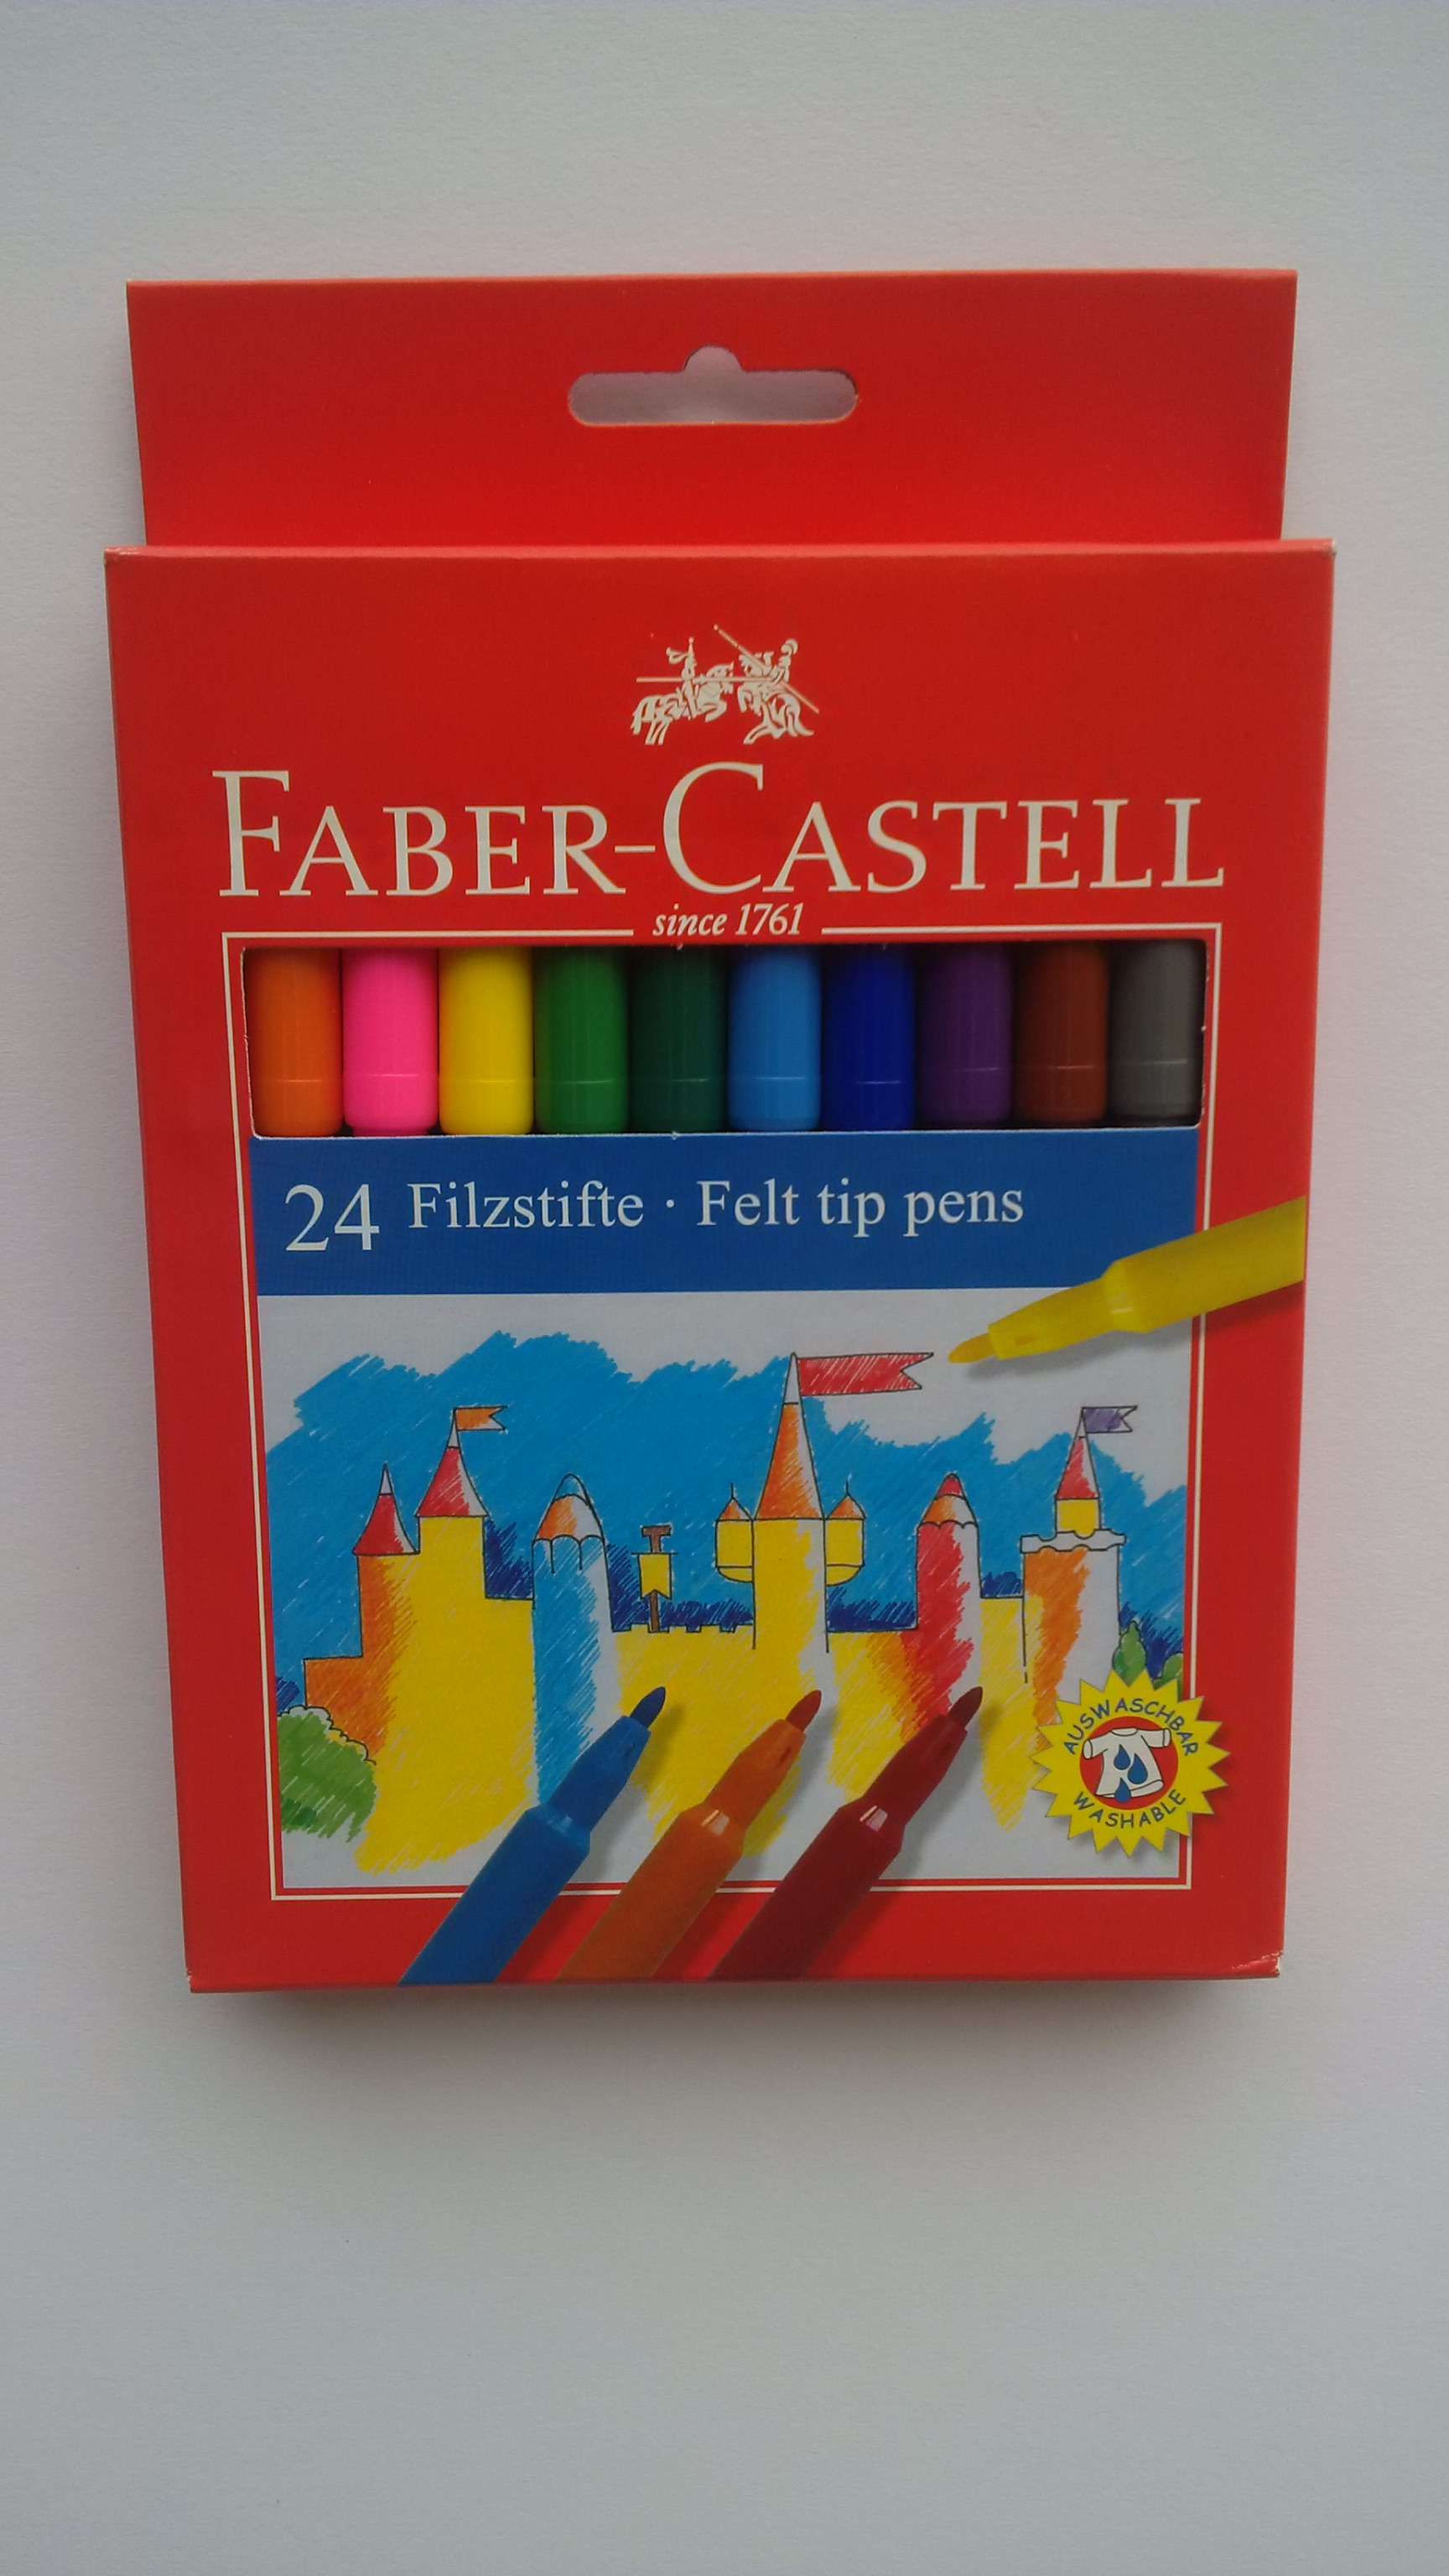 FABER CASTELL 24 FIBRE TIPPED PENS 554224 (155120)